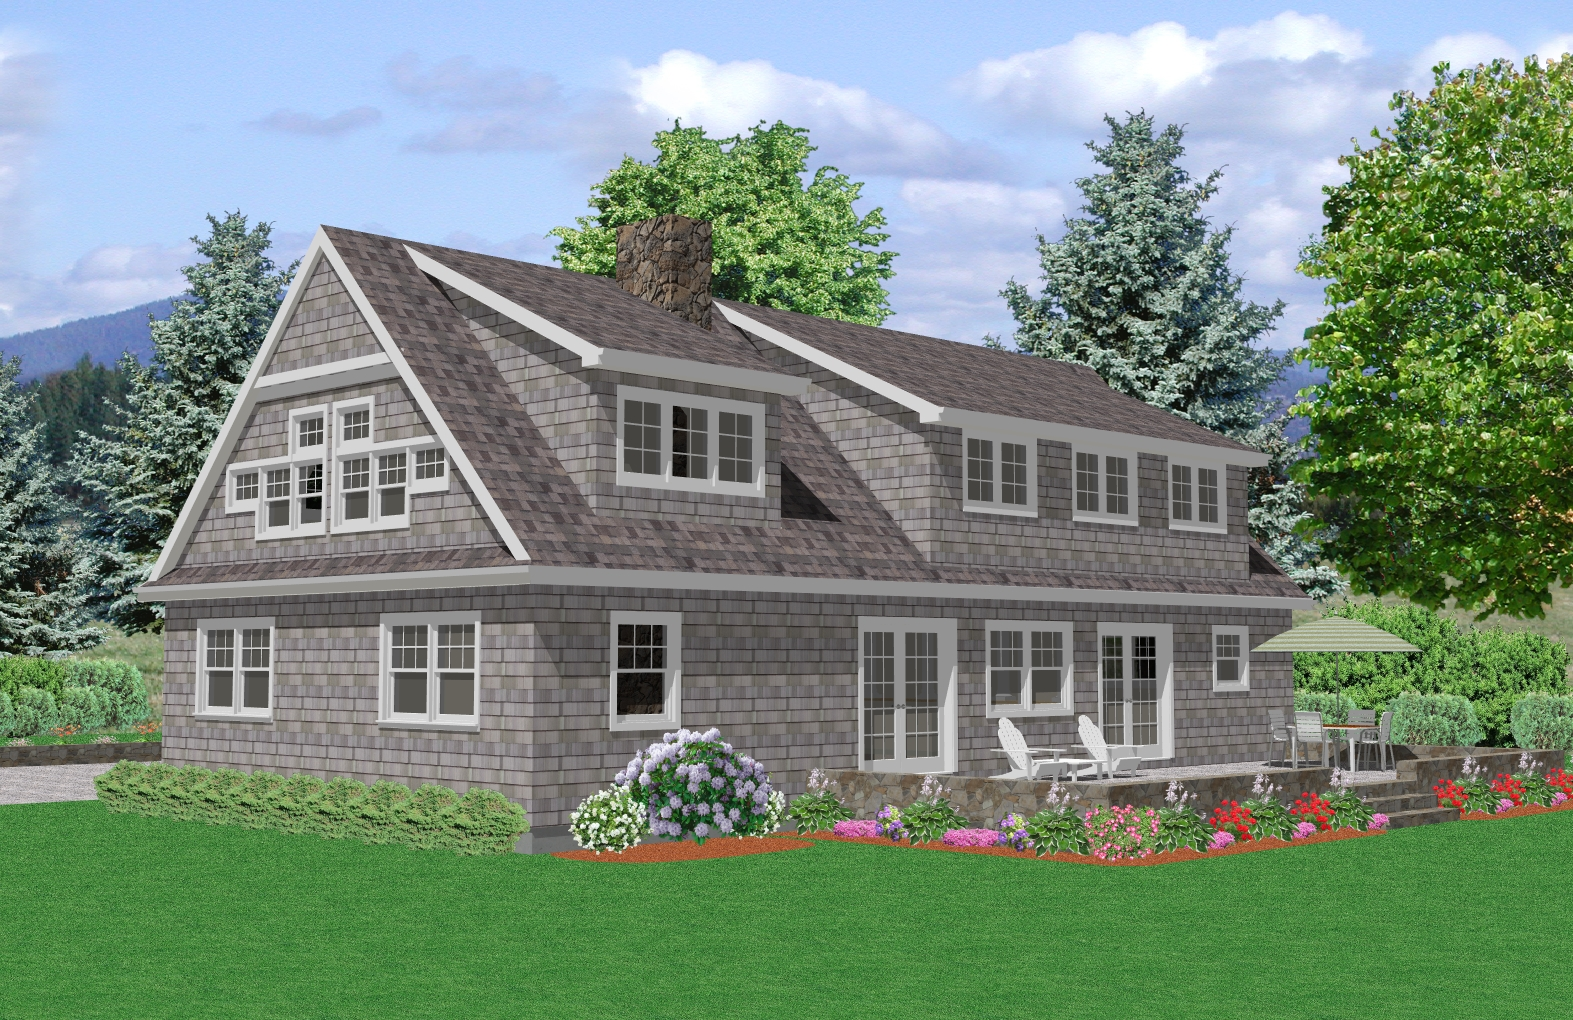 Jenny steffens hobick new addition house plans cape cod for Cape cod house plans